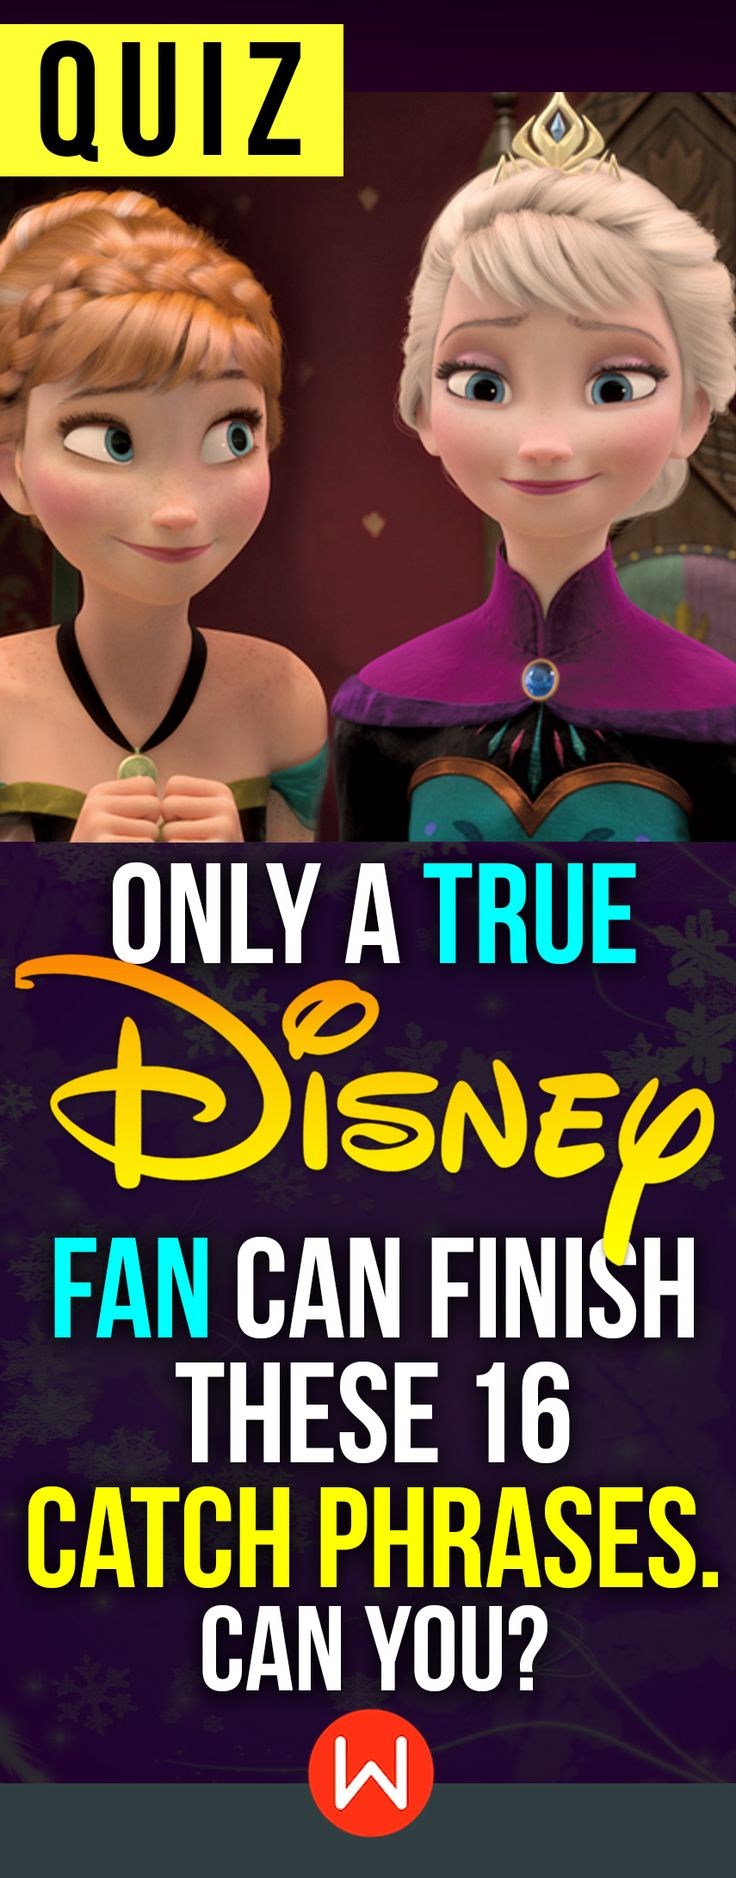 """Disney Quiz: Can you finish 16 Disney catch phrases? DO you think you've seen enough Disney movies to ace this quiz? Prove you are an AUTHENTIC Disney fan, who knows everything Disney! Will you? buzzfeed quizzes, playbuzz quiz, Disney test. """"It's kind of fun to do the impossible (passing this quiz)."""" - Walt Disney"""